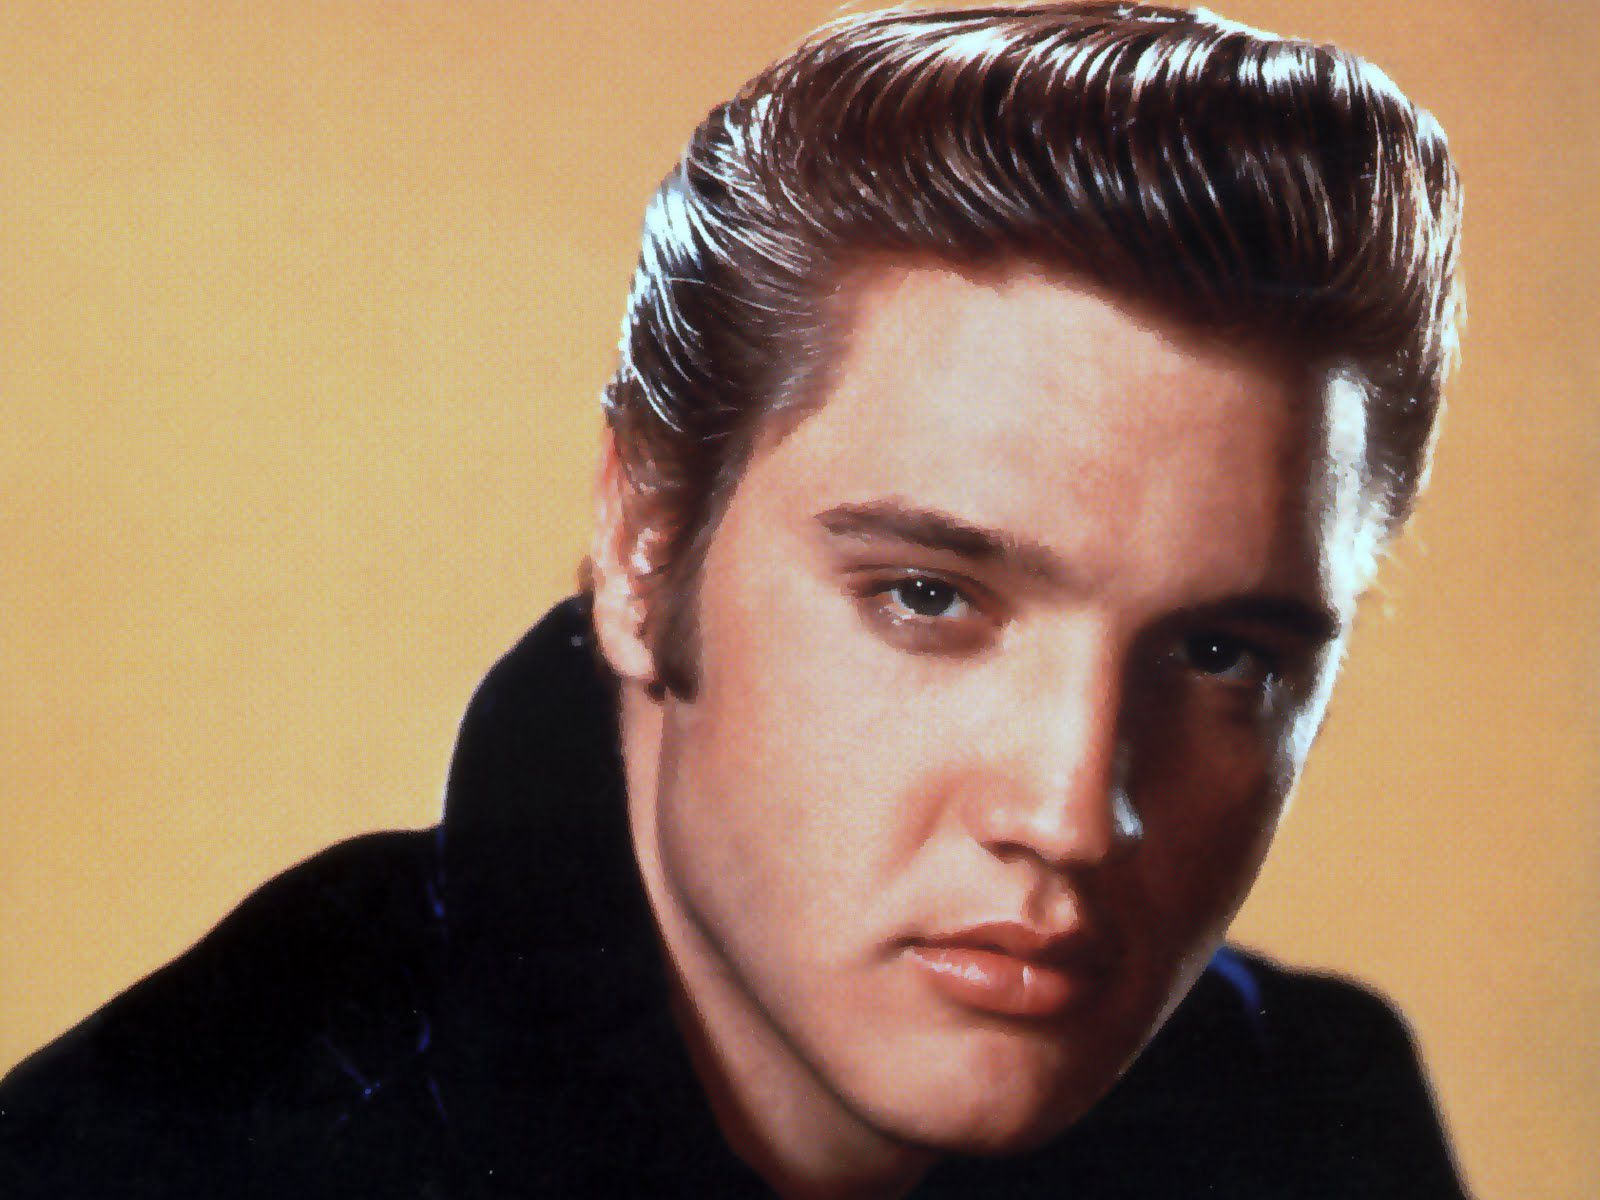 25 Fun Facts About Elvis Presley, the King of Rock & Roll